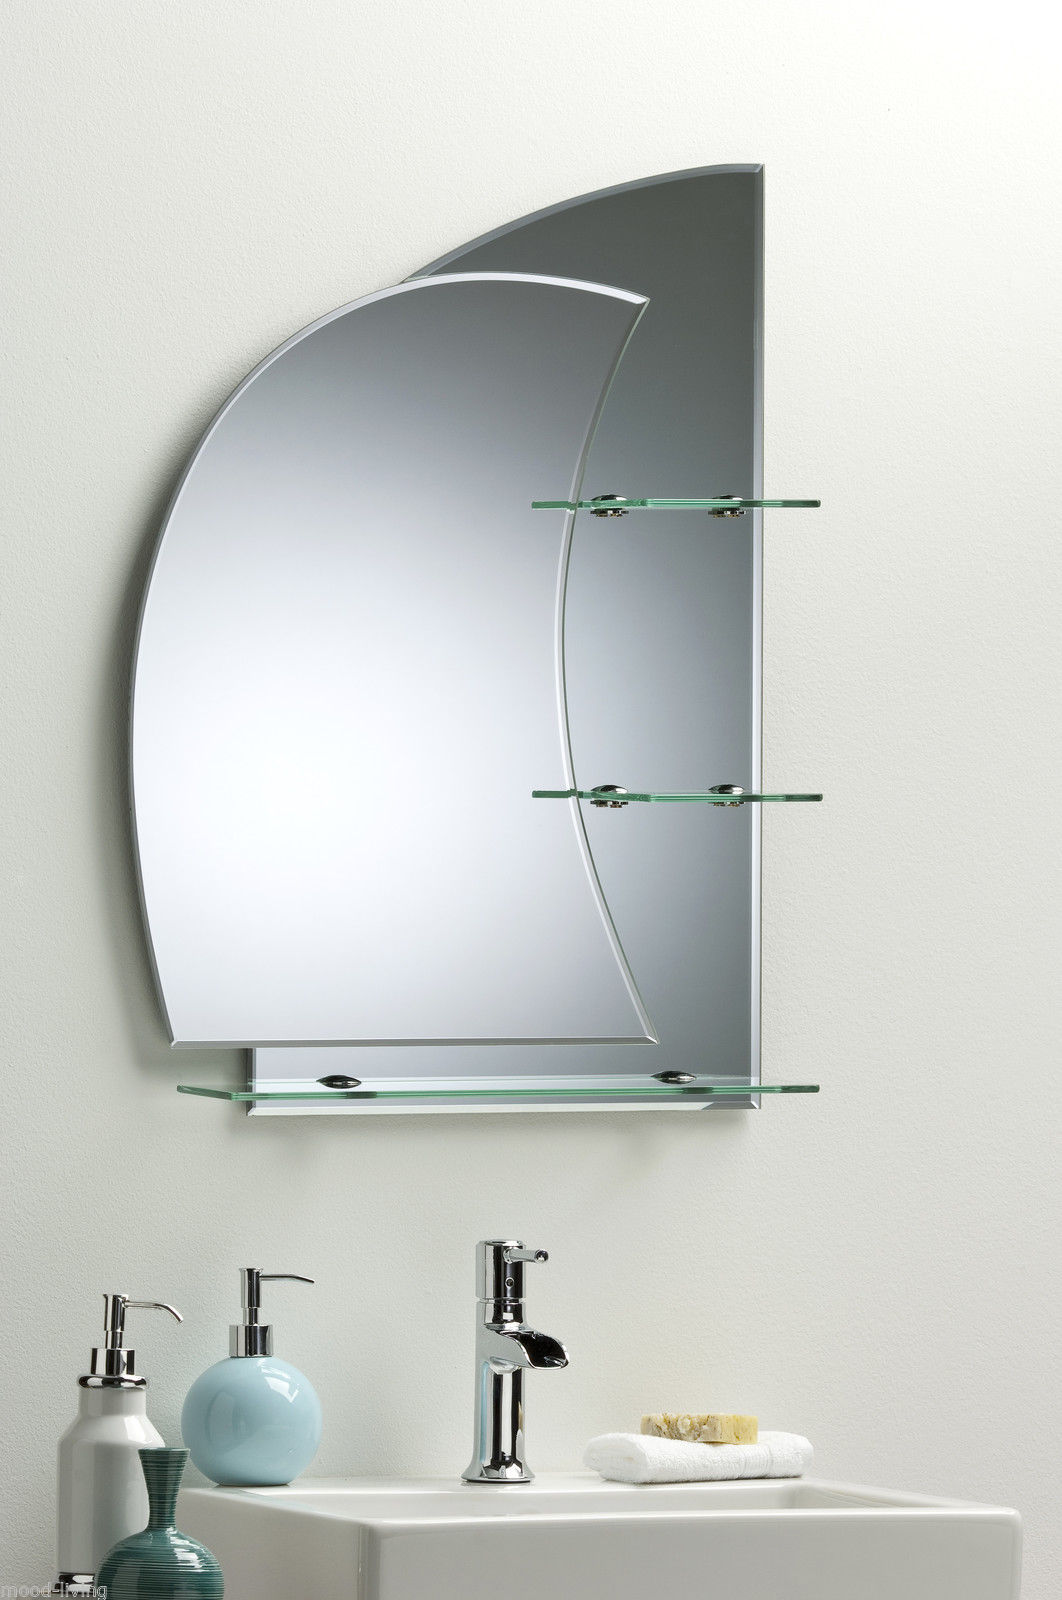 Bathroom Mirror With Shelves Stunning Nautical Design Plain Wall Hung Shelf Ebay